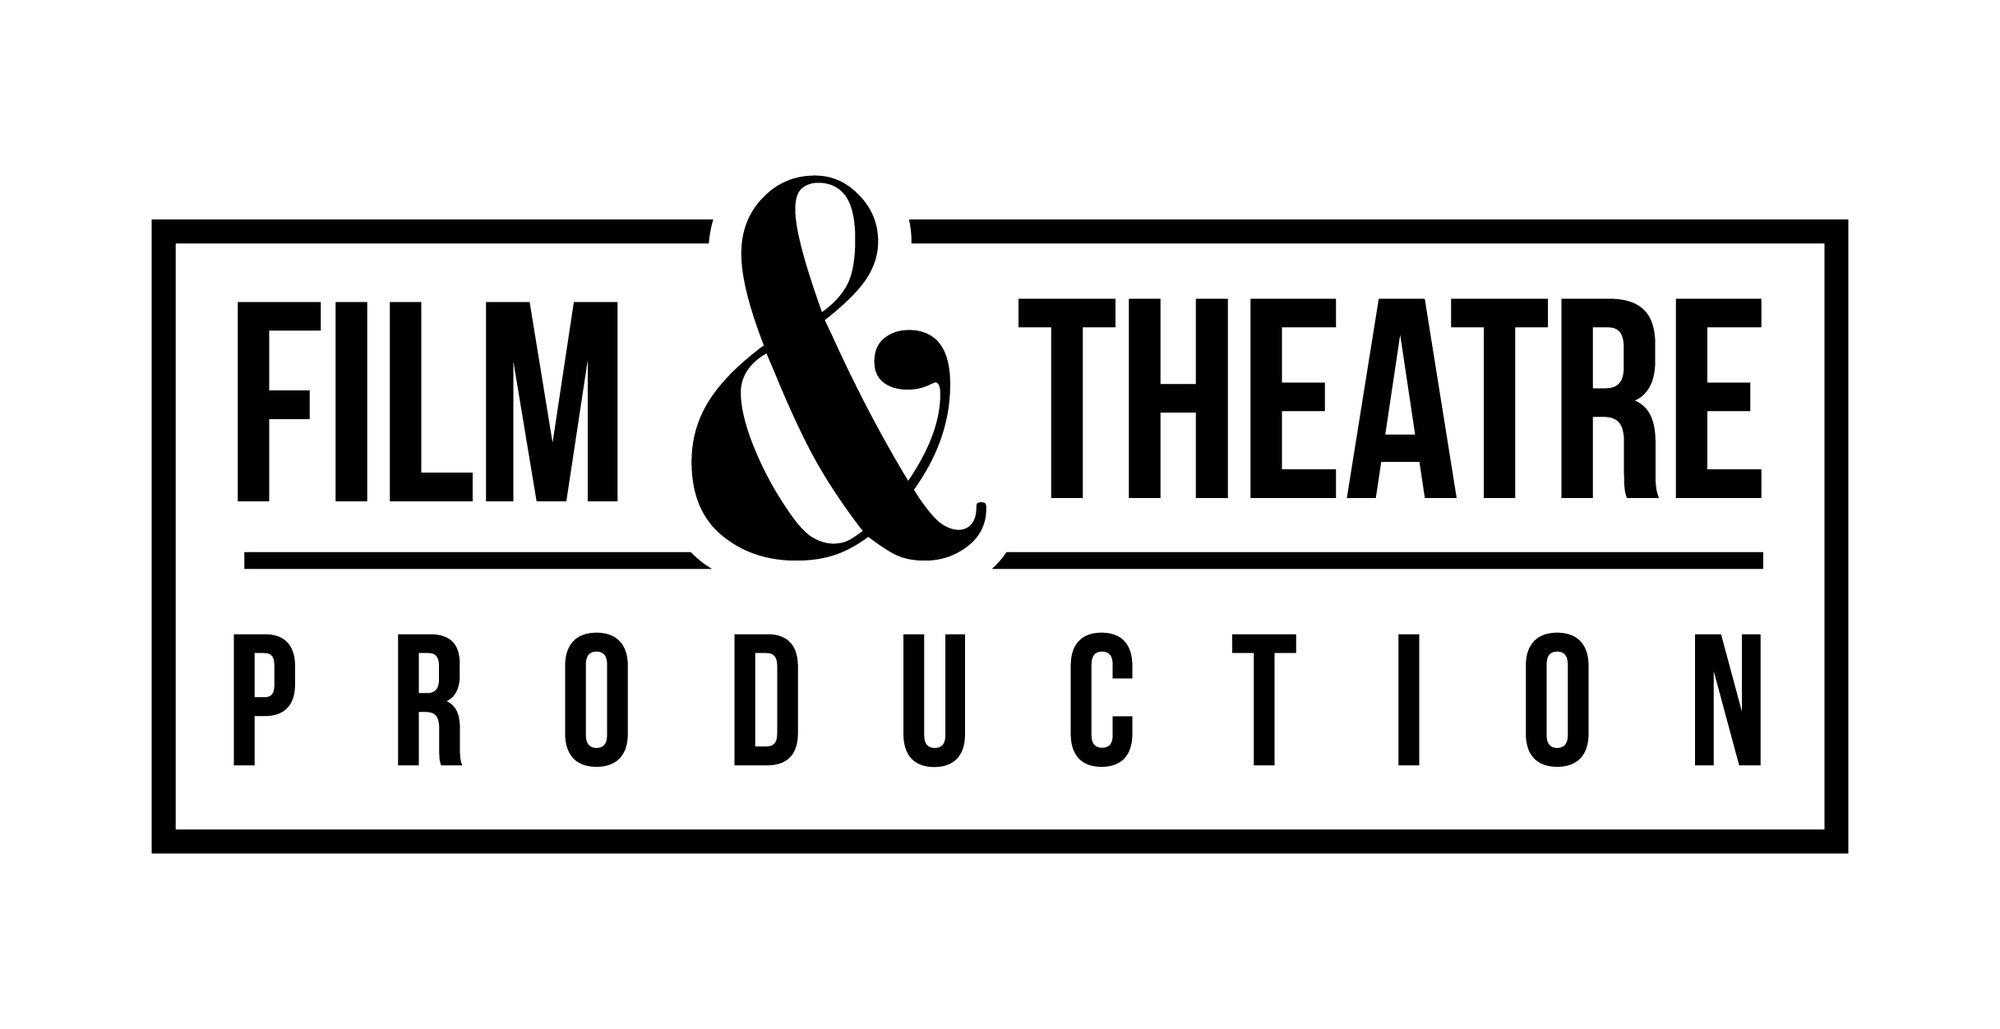 Film and theatre production